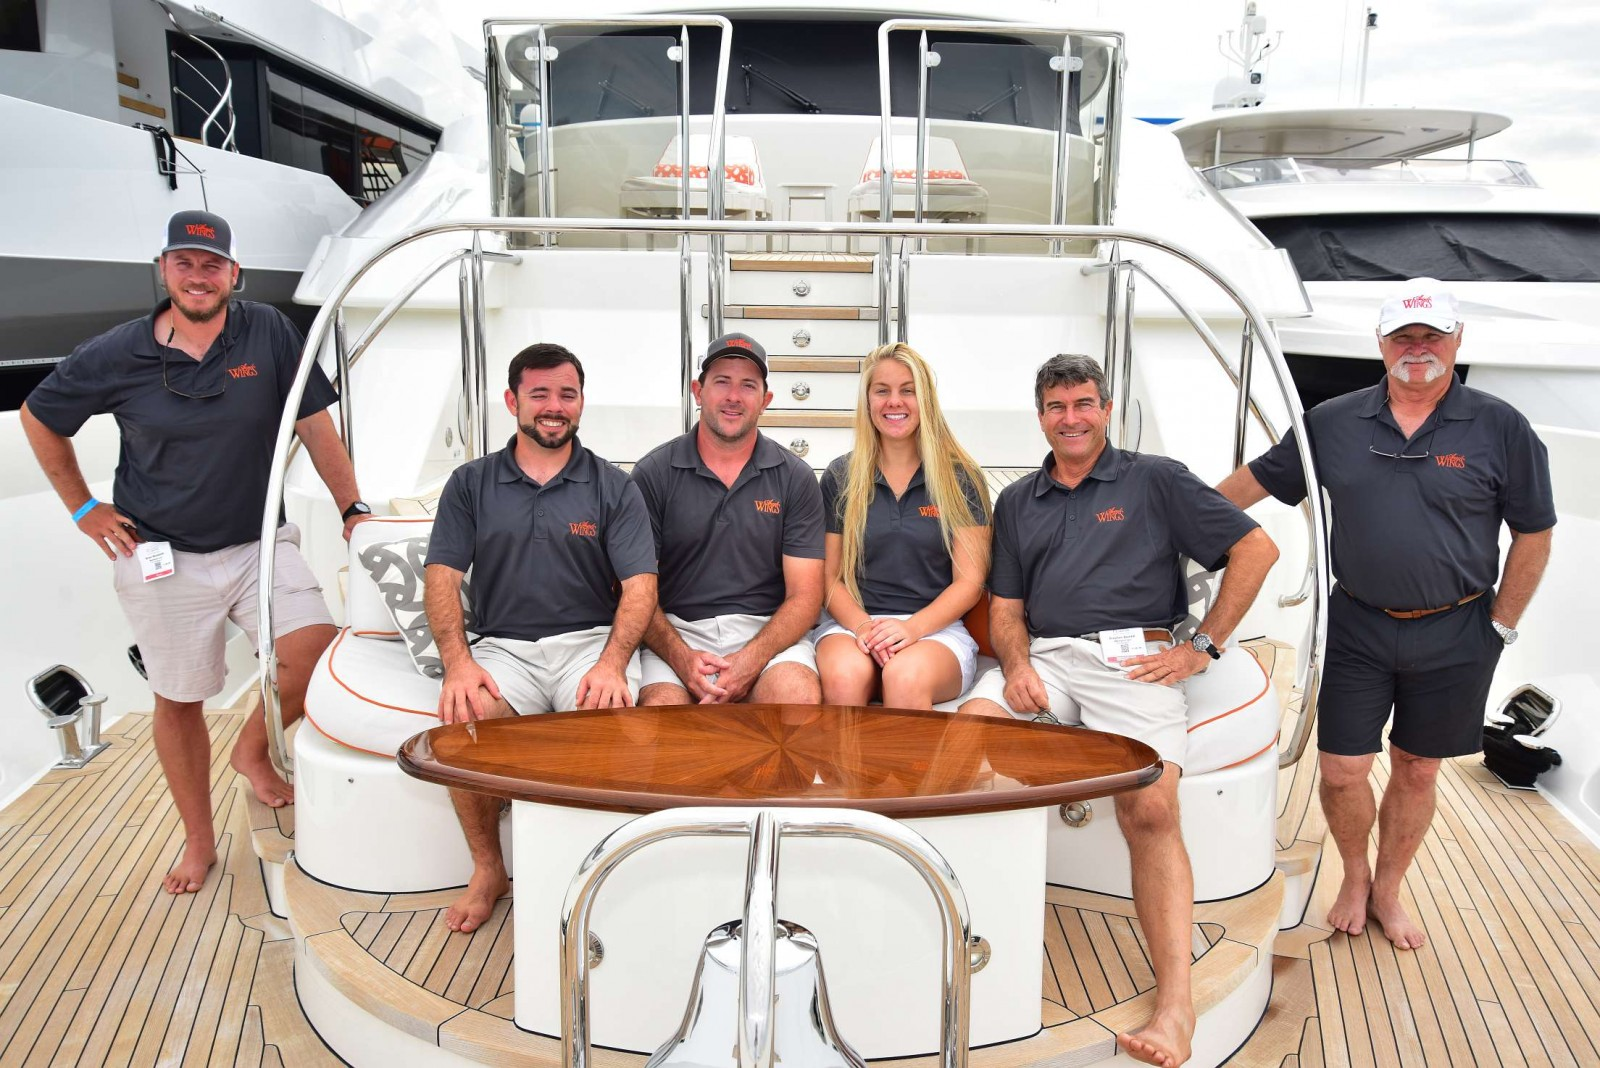 FLIBS18: Scene on the docks